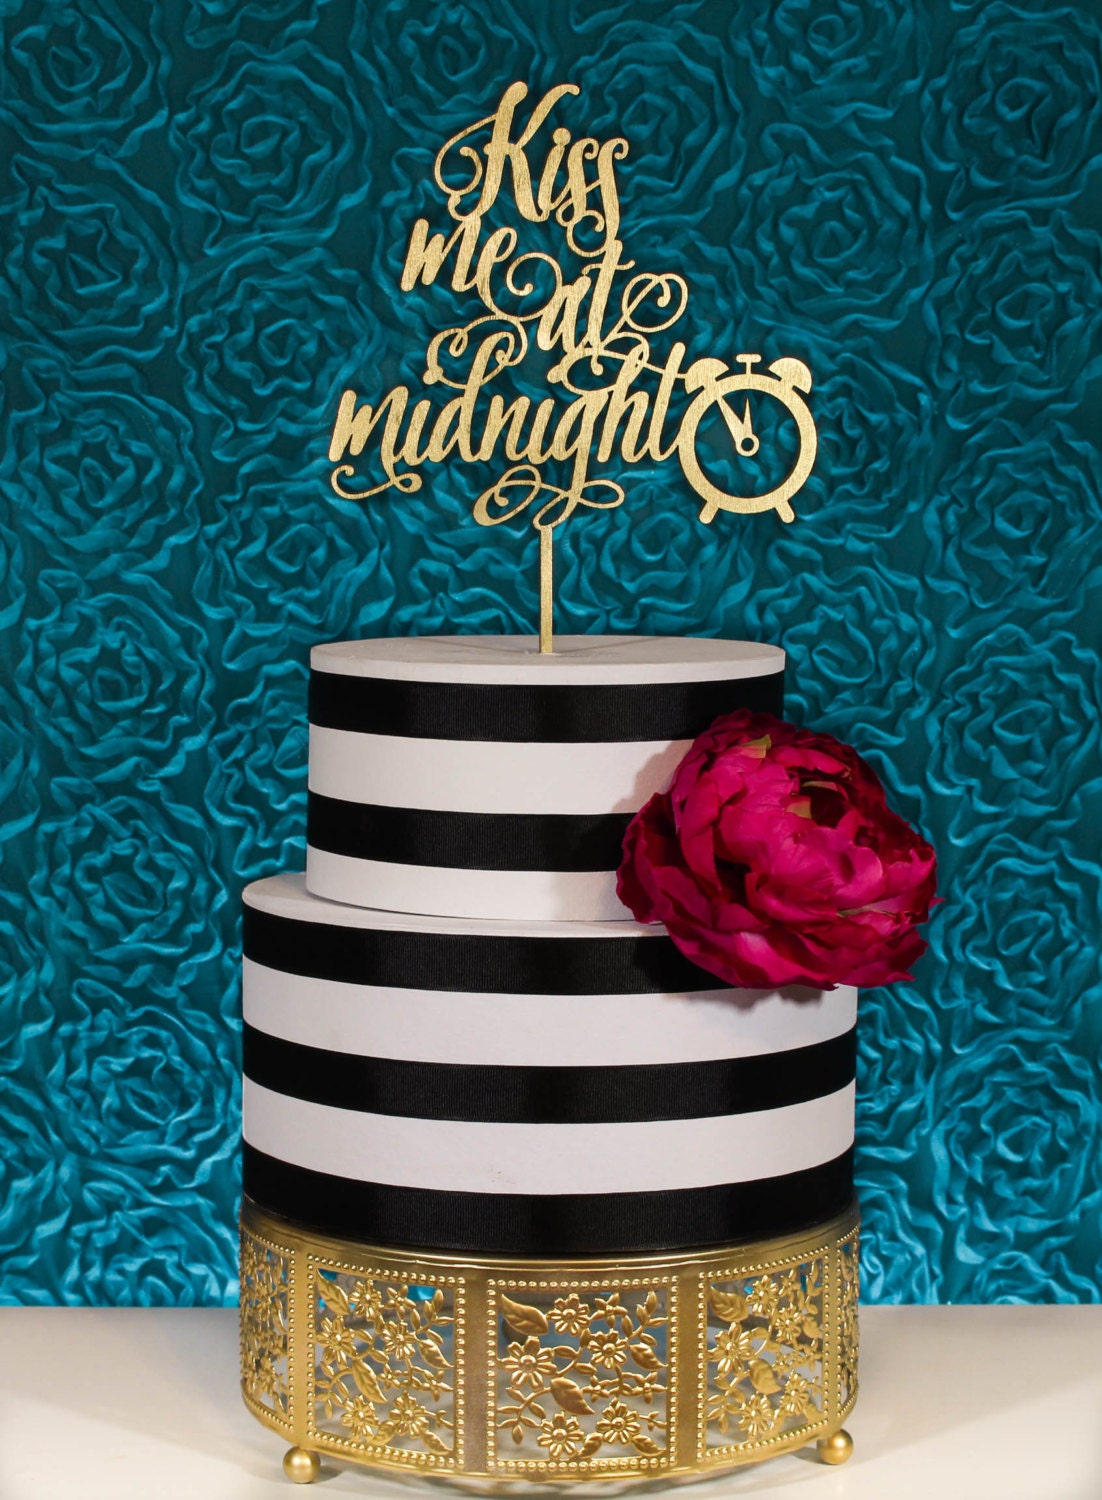 new years wedding cake topper kiss me at midnight